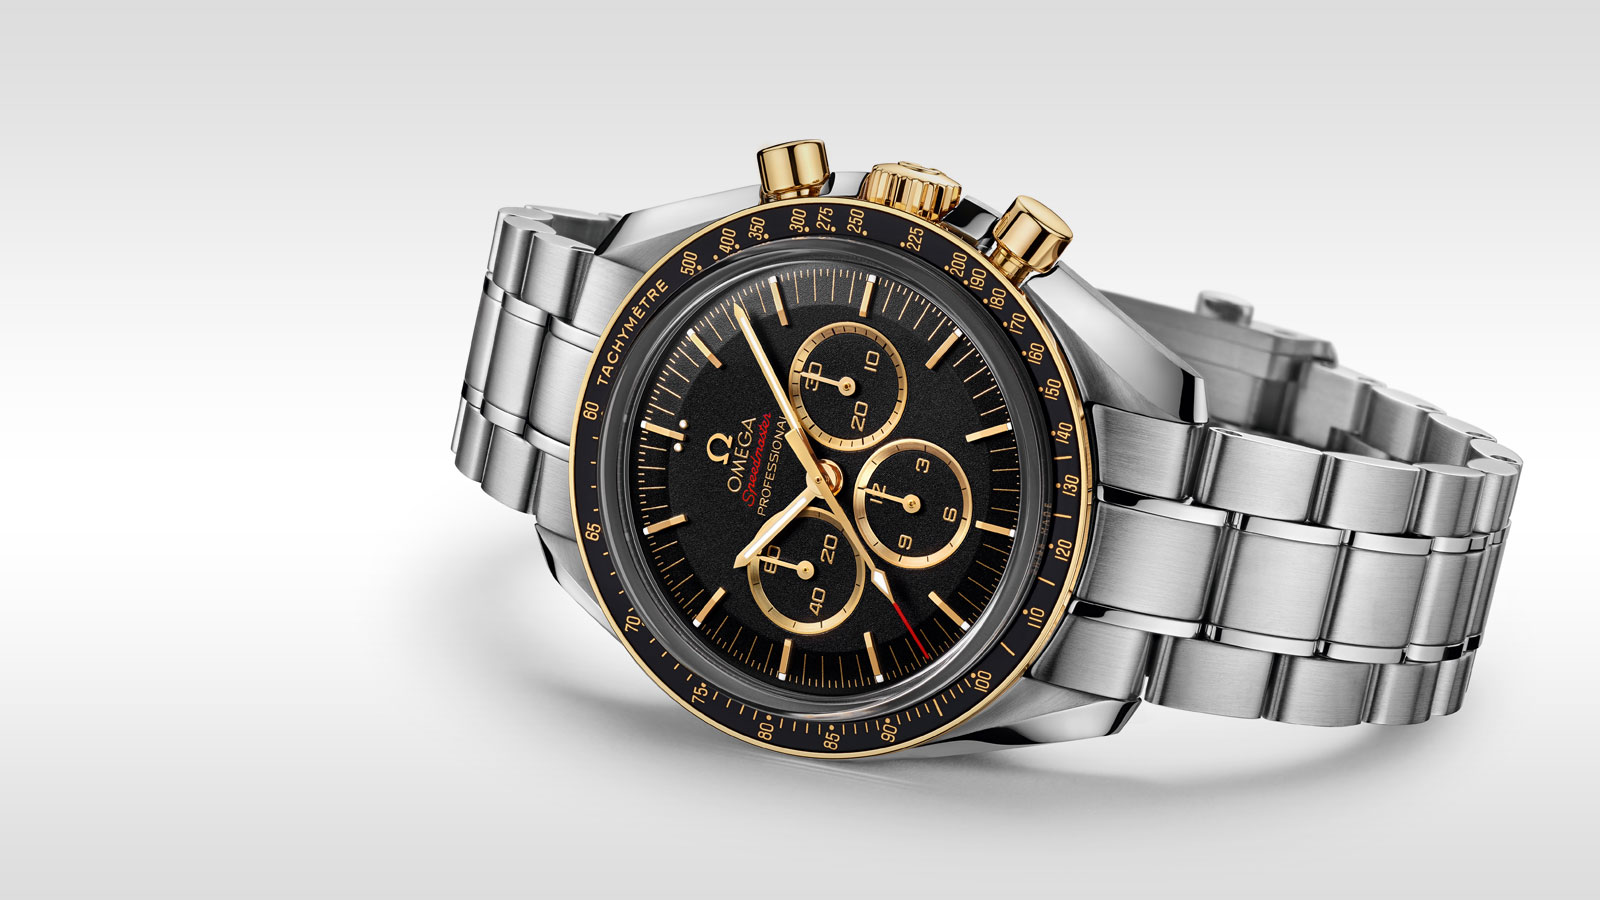 Introducing Omega Speedmaster Tokyo 2020 Olympics Limited Editions